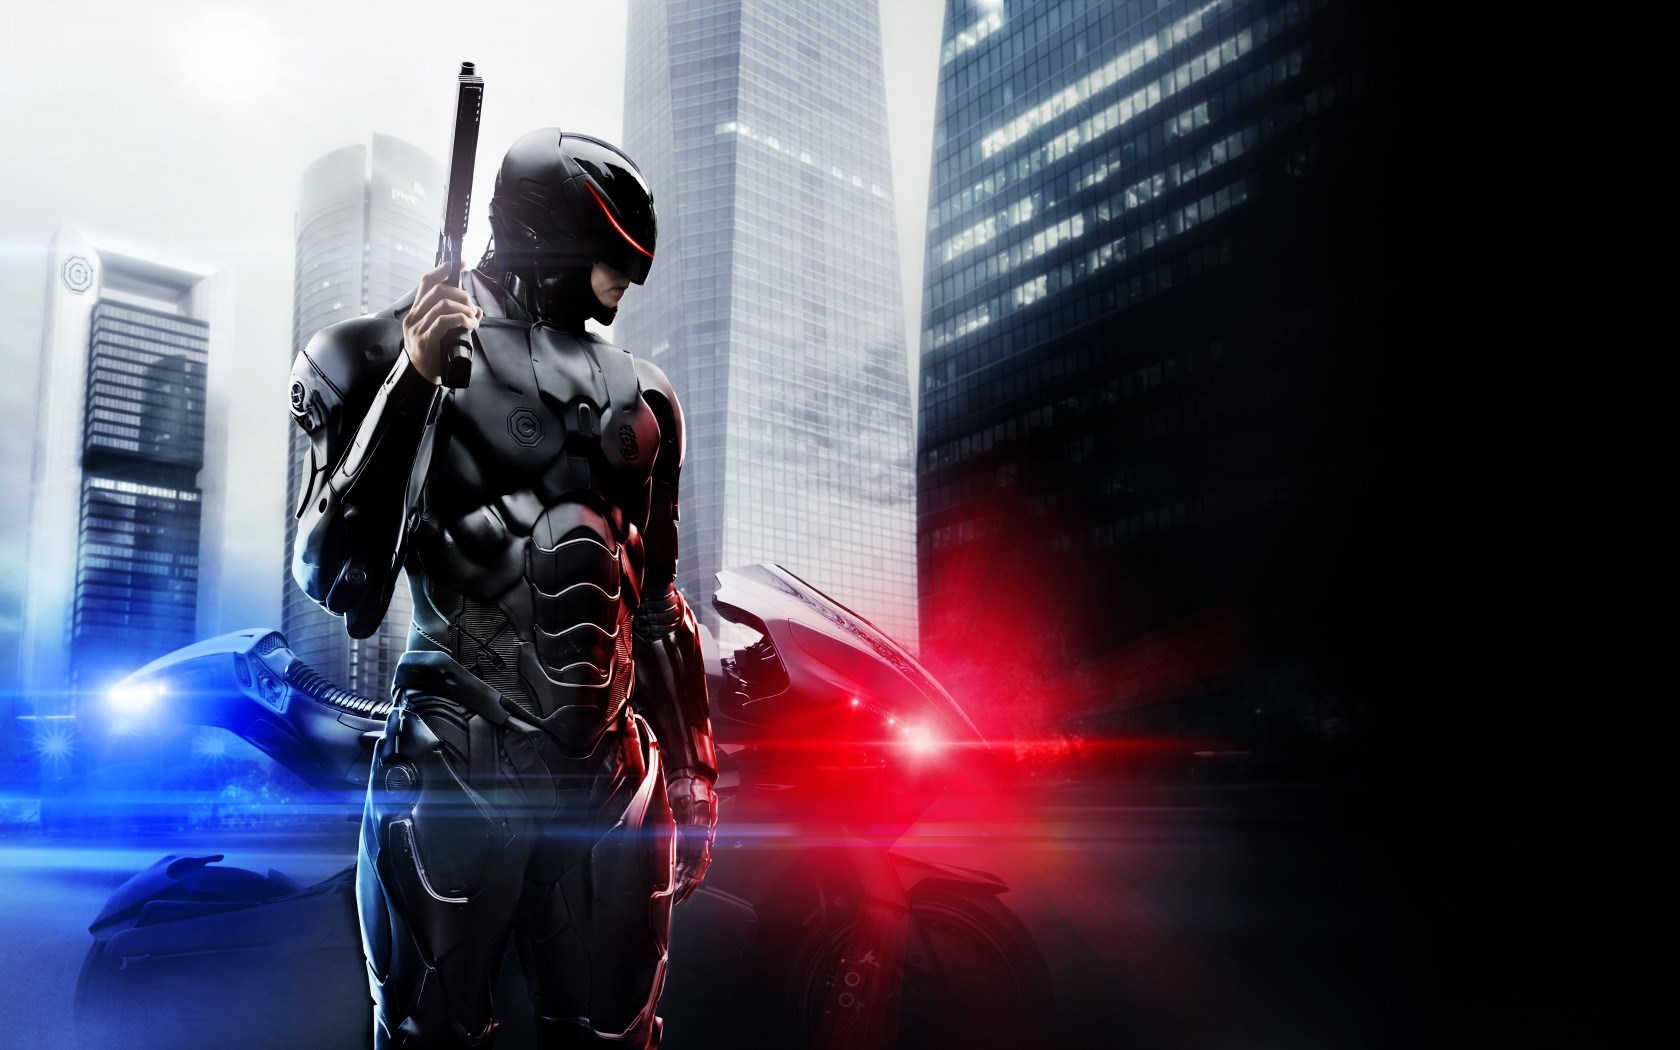 RoboCop Sci-Fi Movie 2014